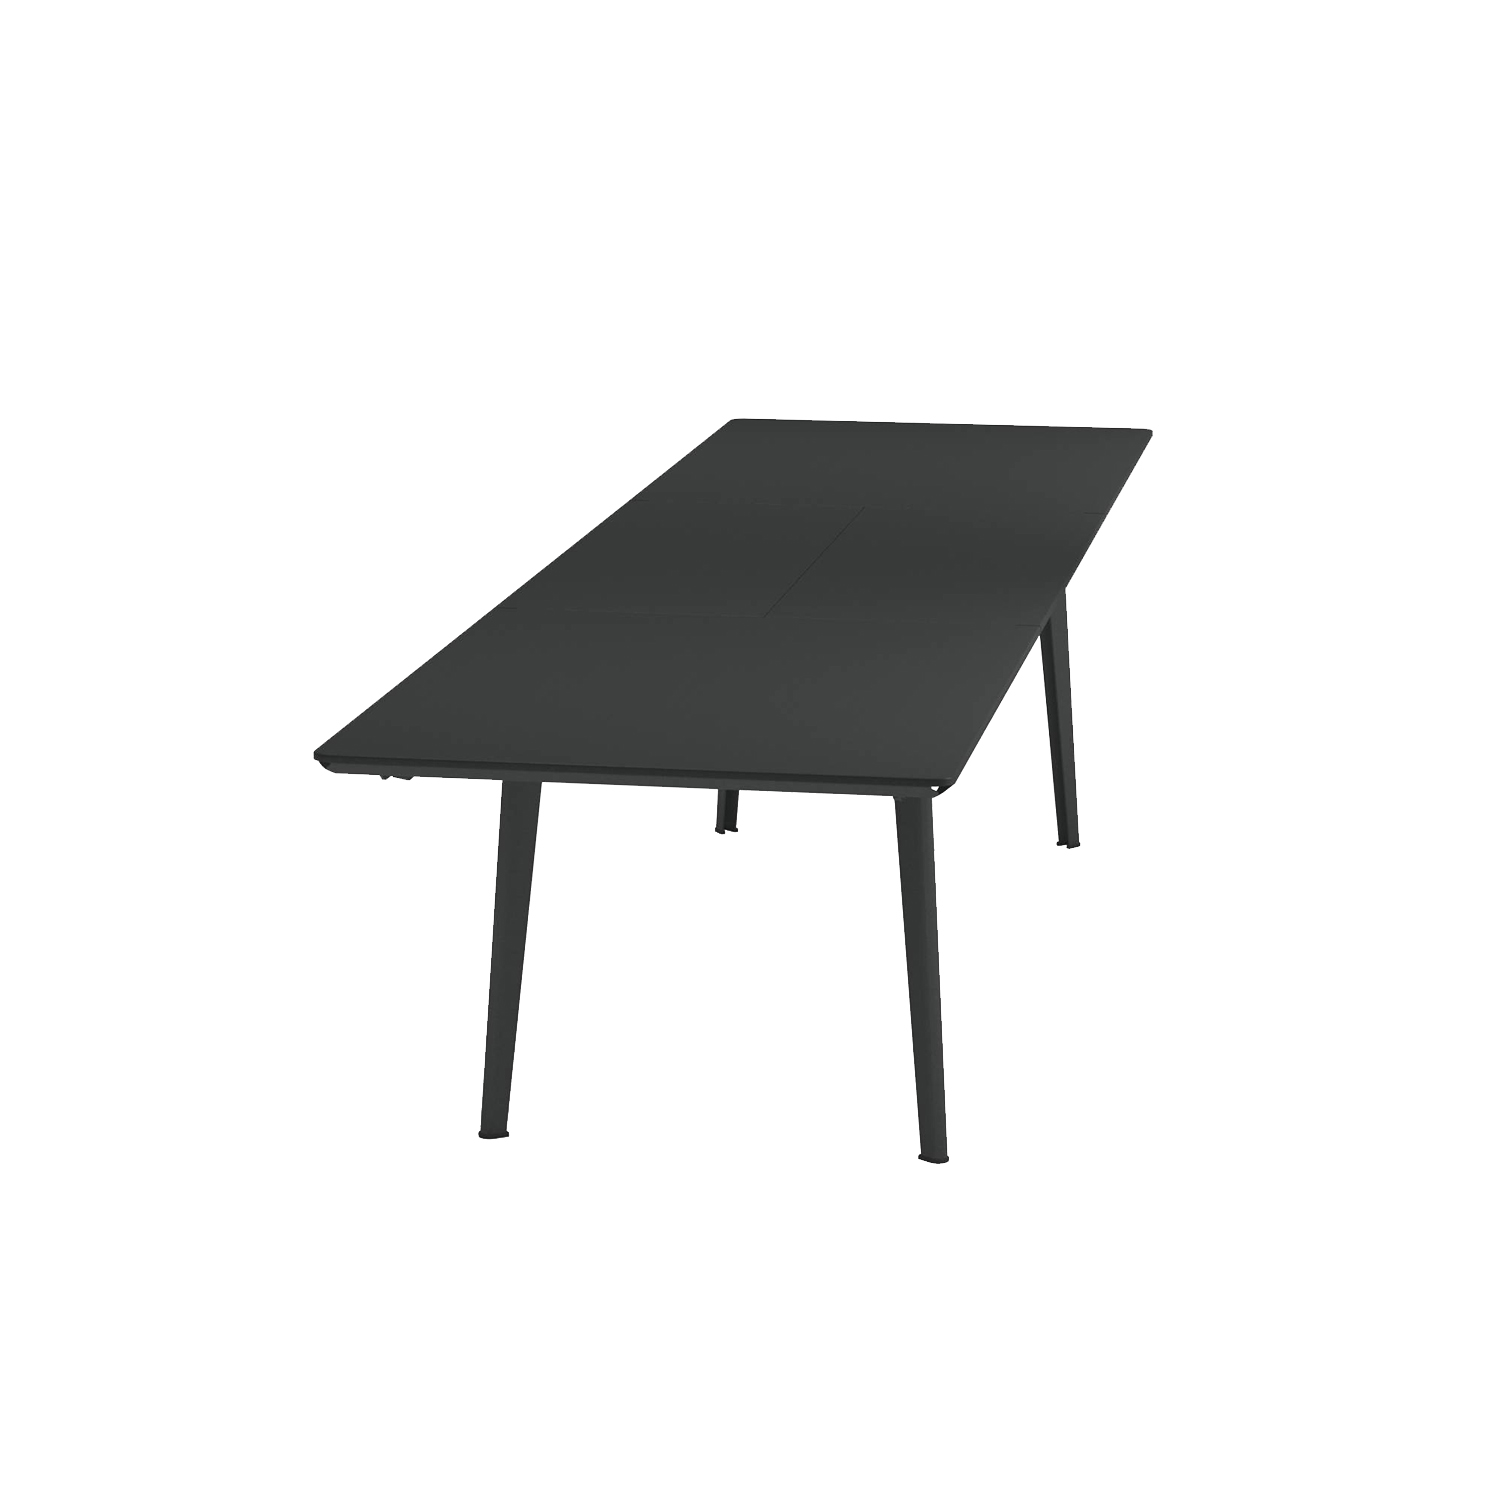 Plus 4 Extensible Table - <p>Plus4 collection is made up of extendible tables: one with sizes 160+110x 90 cm and another one with sizes 220+110x90 cm. The surface is made of press-formed steel, with careful work to the finishes for a better aesthetic effect. Used to allow extensibility of the surface, the rails are specifically designed by EMU for this line. The butterfly opening mechanism of the inner extension makes it easier to open these tables. Comparing to a traditional extendible table, the 110 cm extension allows adding 4 seats instead of 2, increasing the possibility of use for this product. Furthermore, the extension of the table is designed in a way that all the seats fit easily without any impediment. There are two designs available for the legs: round and conical.</p>  | Matter of Stuff